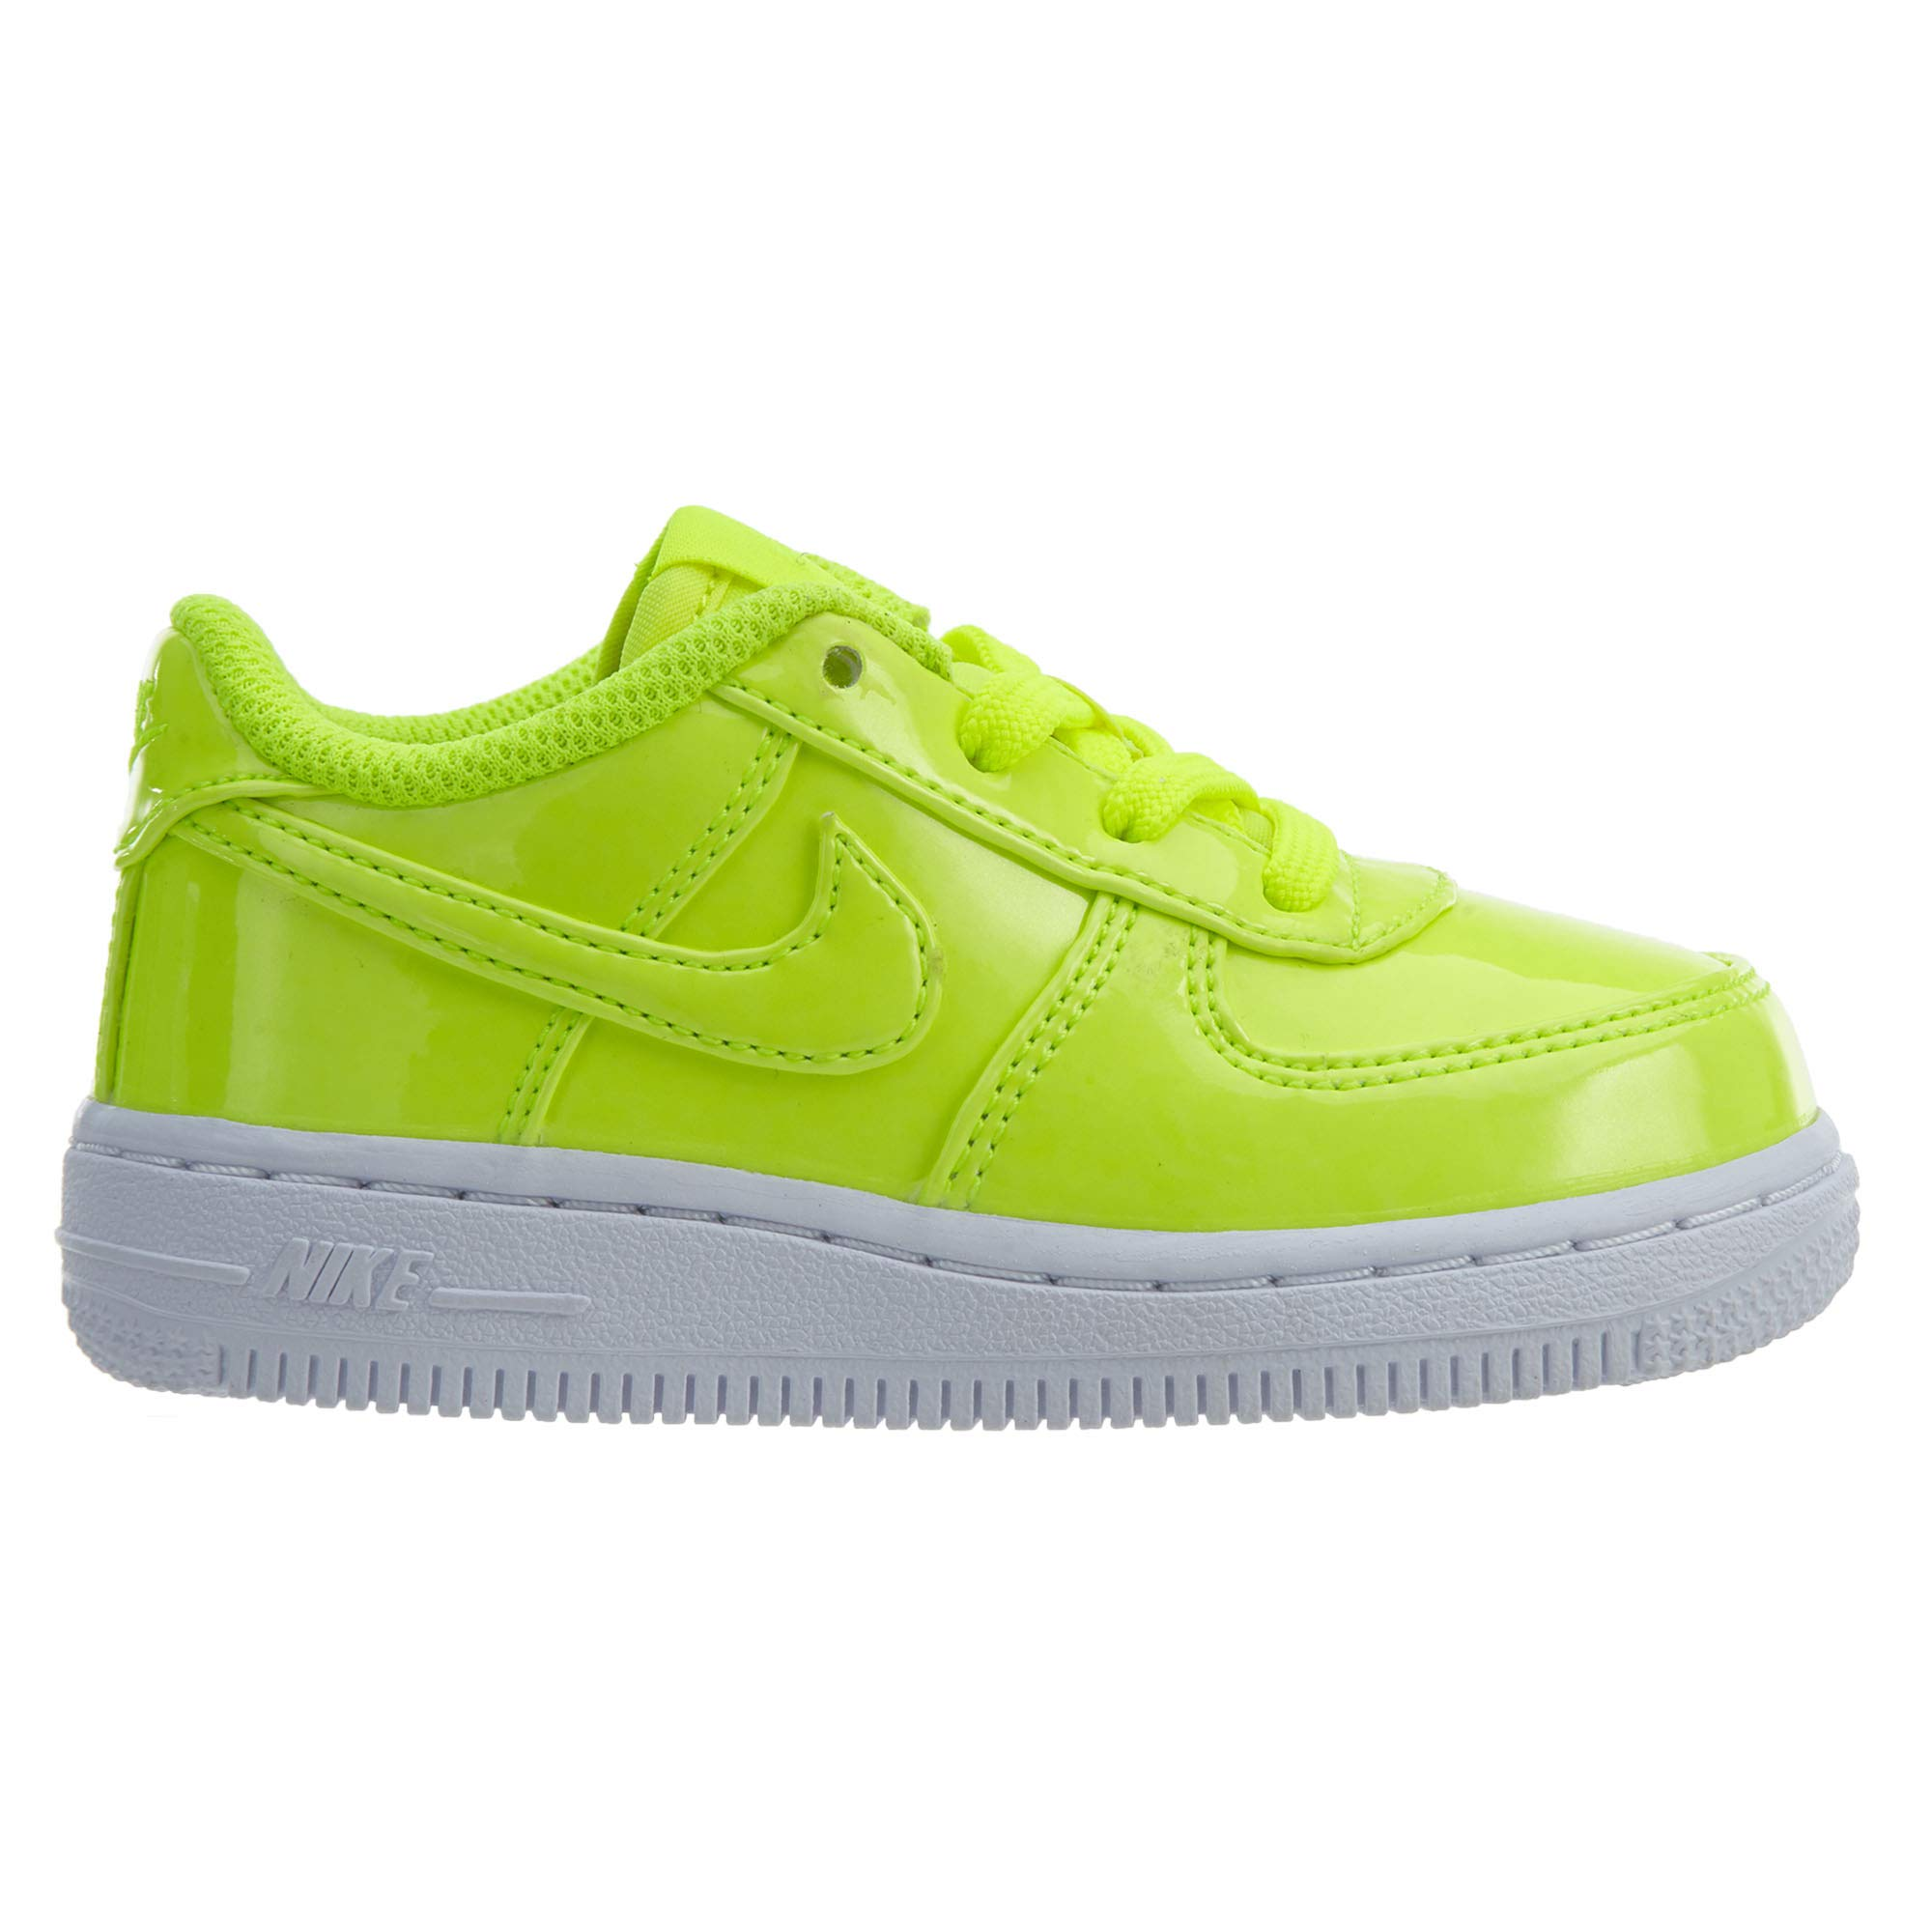 Nike Force 1 Lv8 Uv Toddlers Style: AO2288-700 Size: 6 by Nike (Image #2)